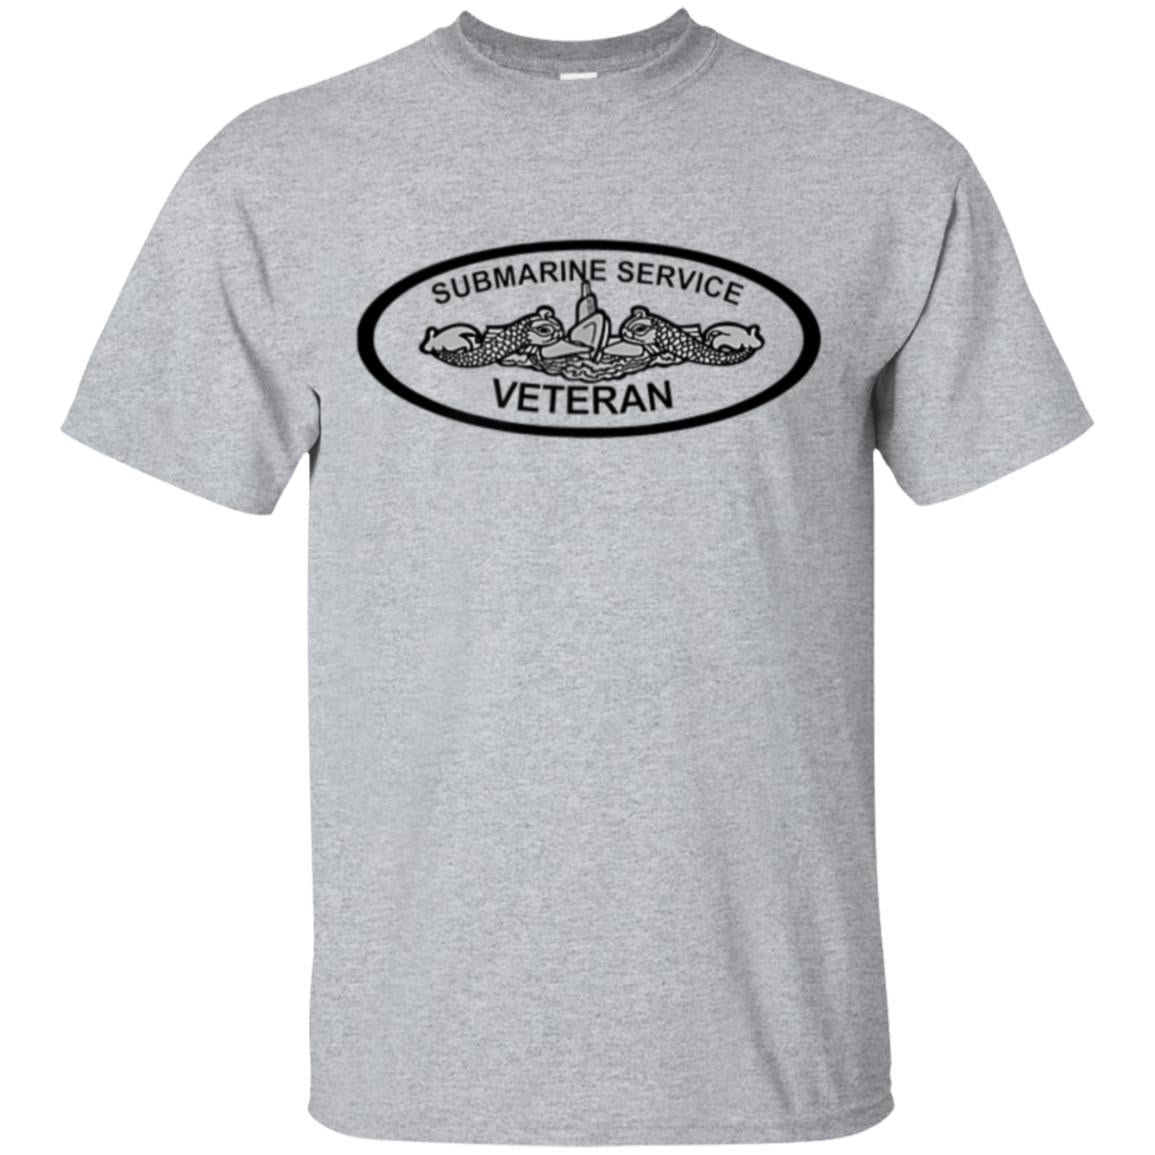 41 FOR FREEDOM NAVY SUBMARINE ENLISTED TEE SHIRT 99promocode